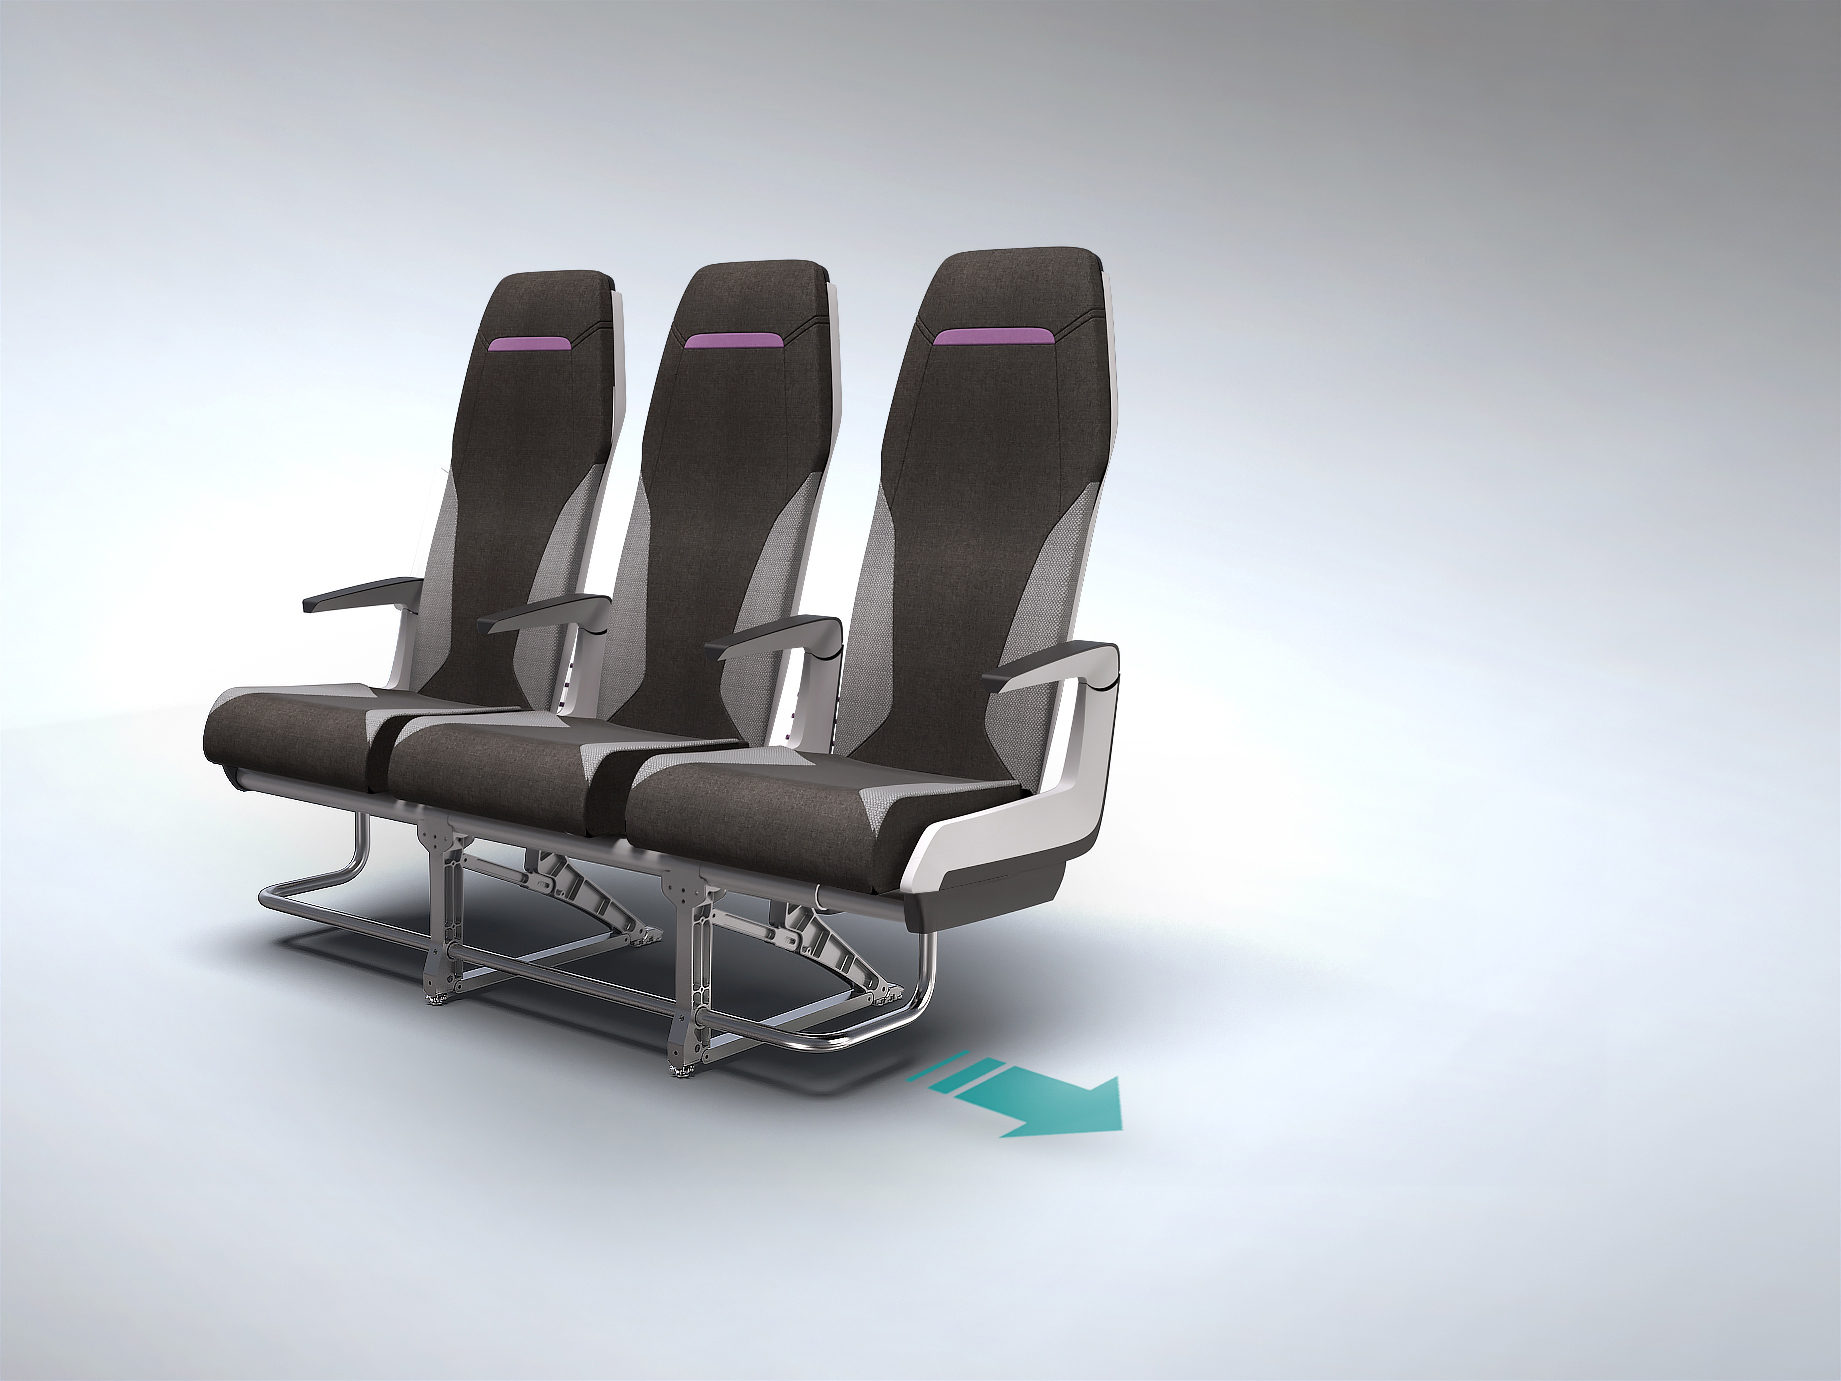 Glad to introduce you PASSME, Innovative Aircraft Seat concept